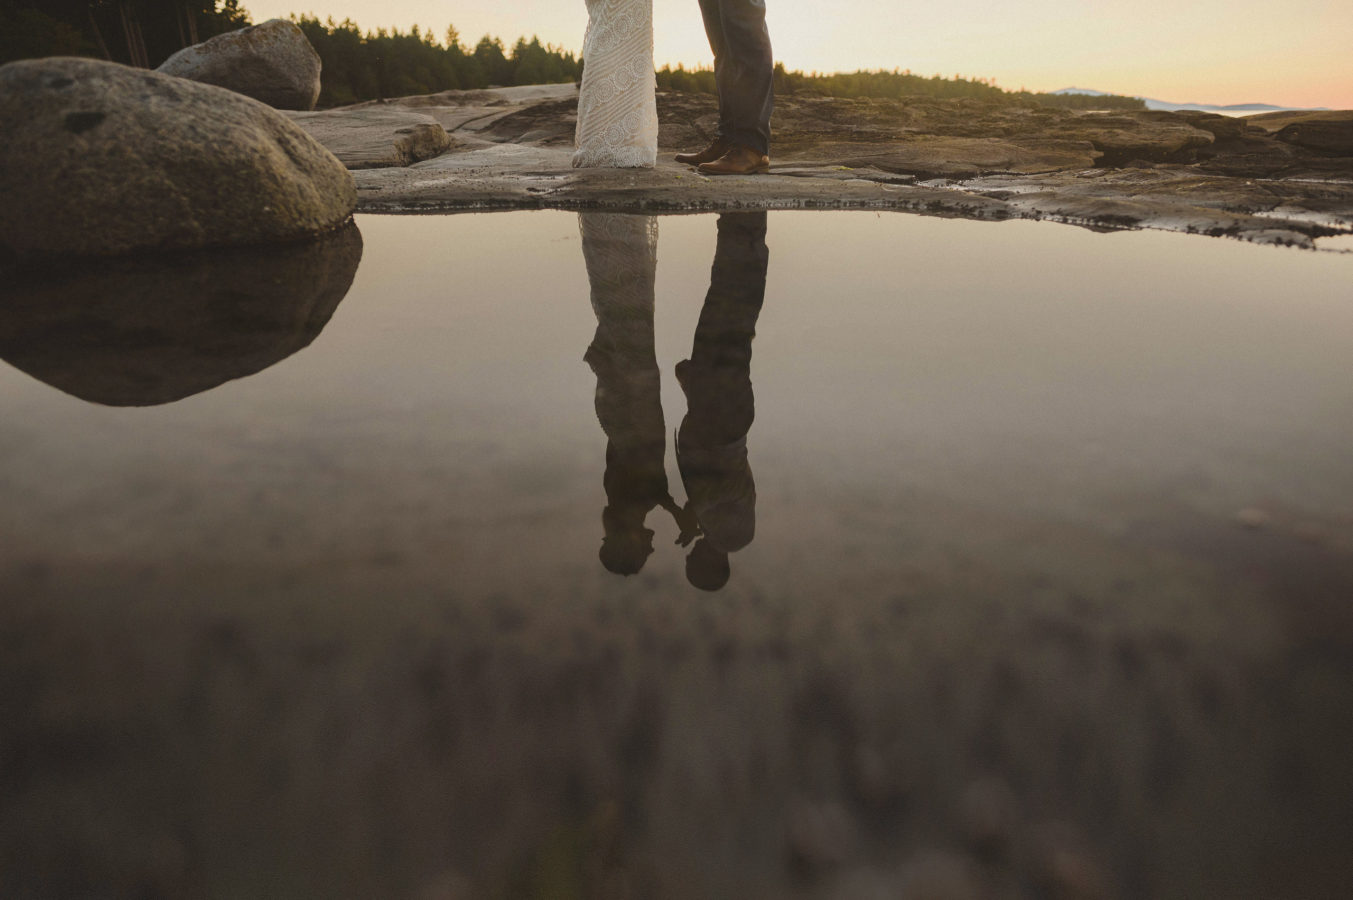 reflection of bride and groom in still water in a tidal pool